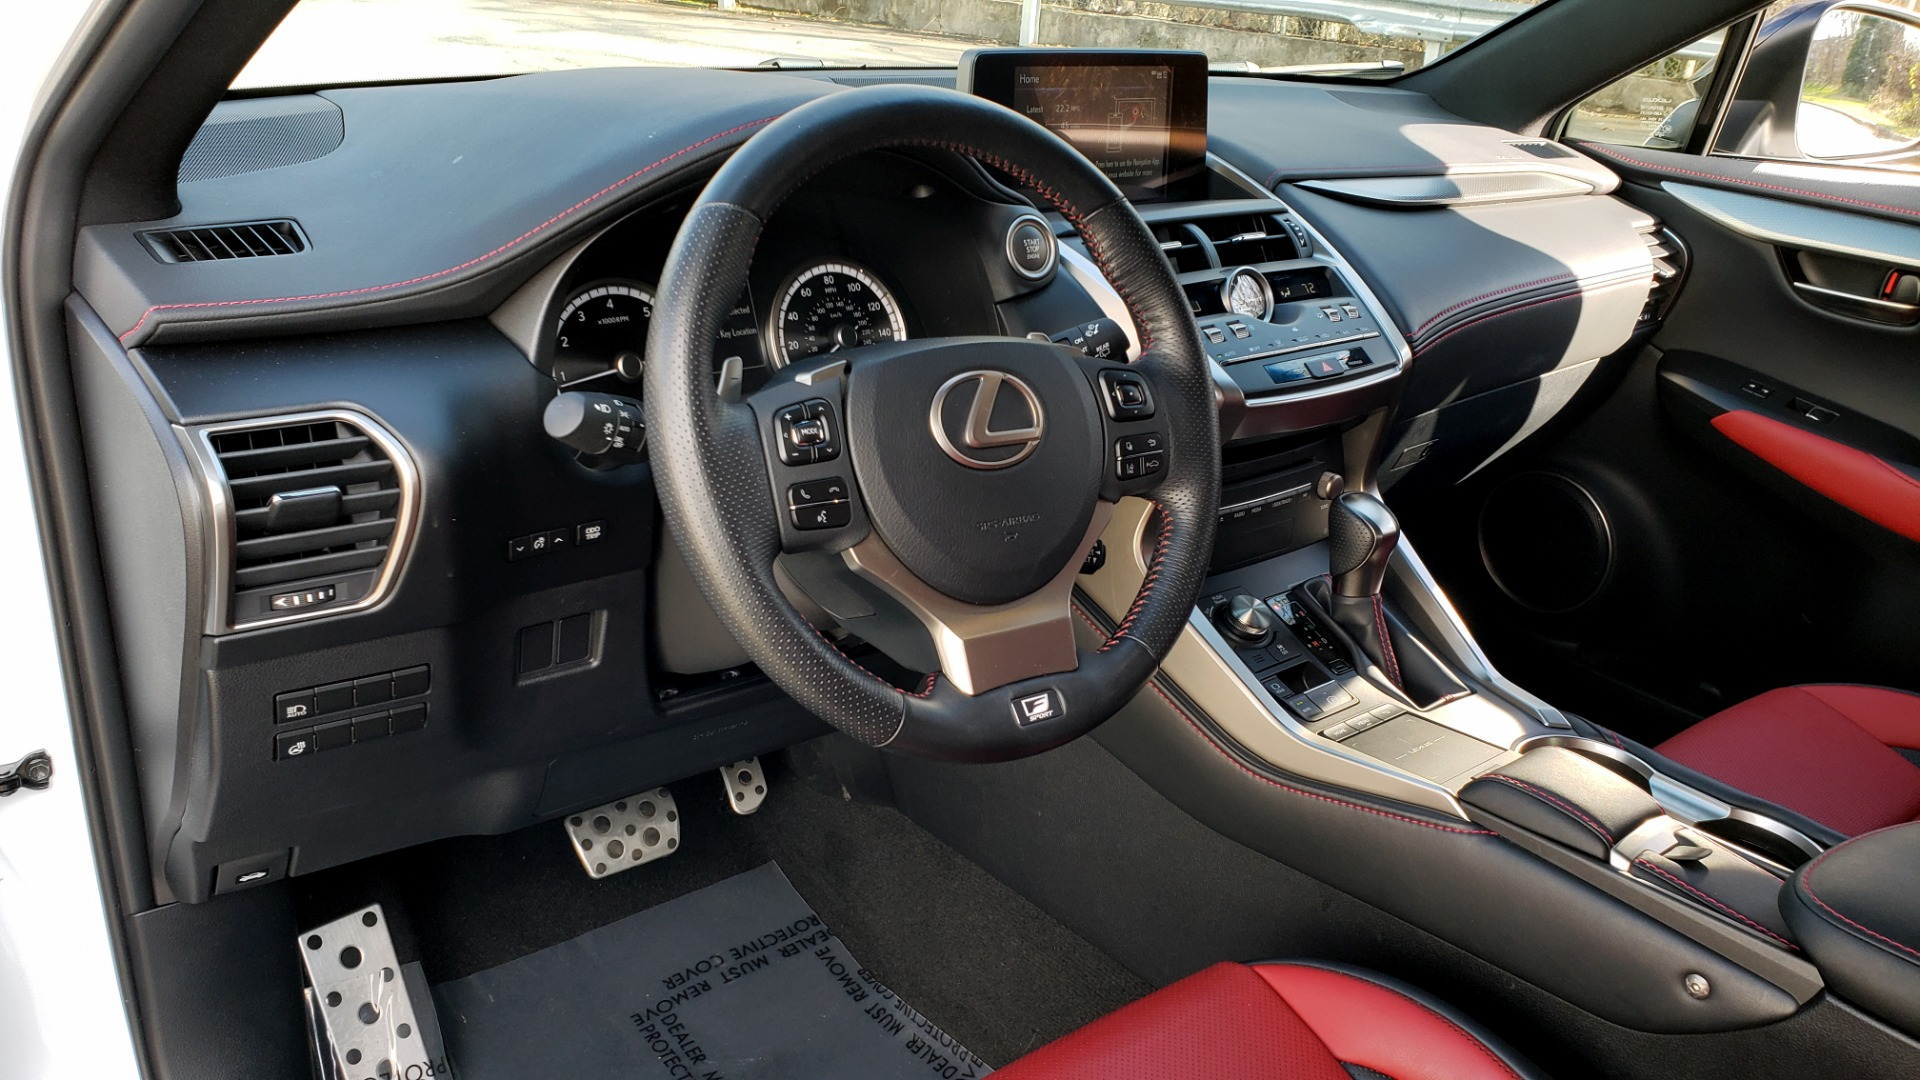 Used 2019 Lexus NX 300 F-SPORT / 2.0L TURBO / LEATHER / 18IN WHEELS / REARVIEW for sale $31,195 at Formula Imports in Charlotte NC 28227 39